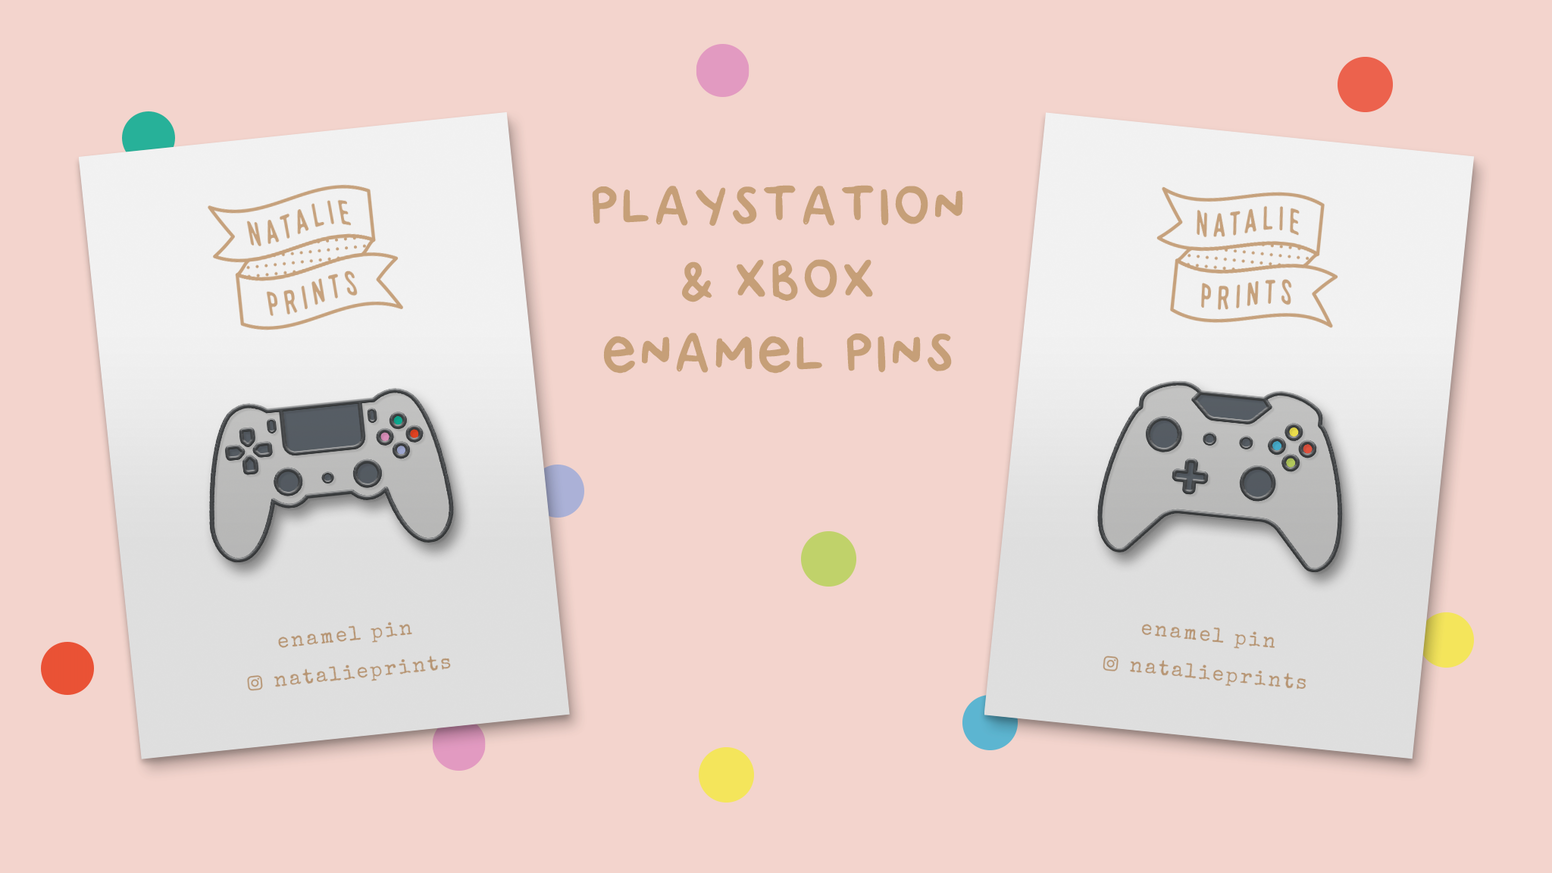 PlayStation & XBOX Controller Enamel Pins by Natalie Prints